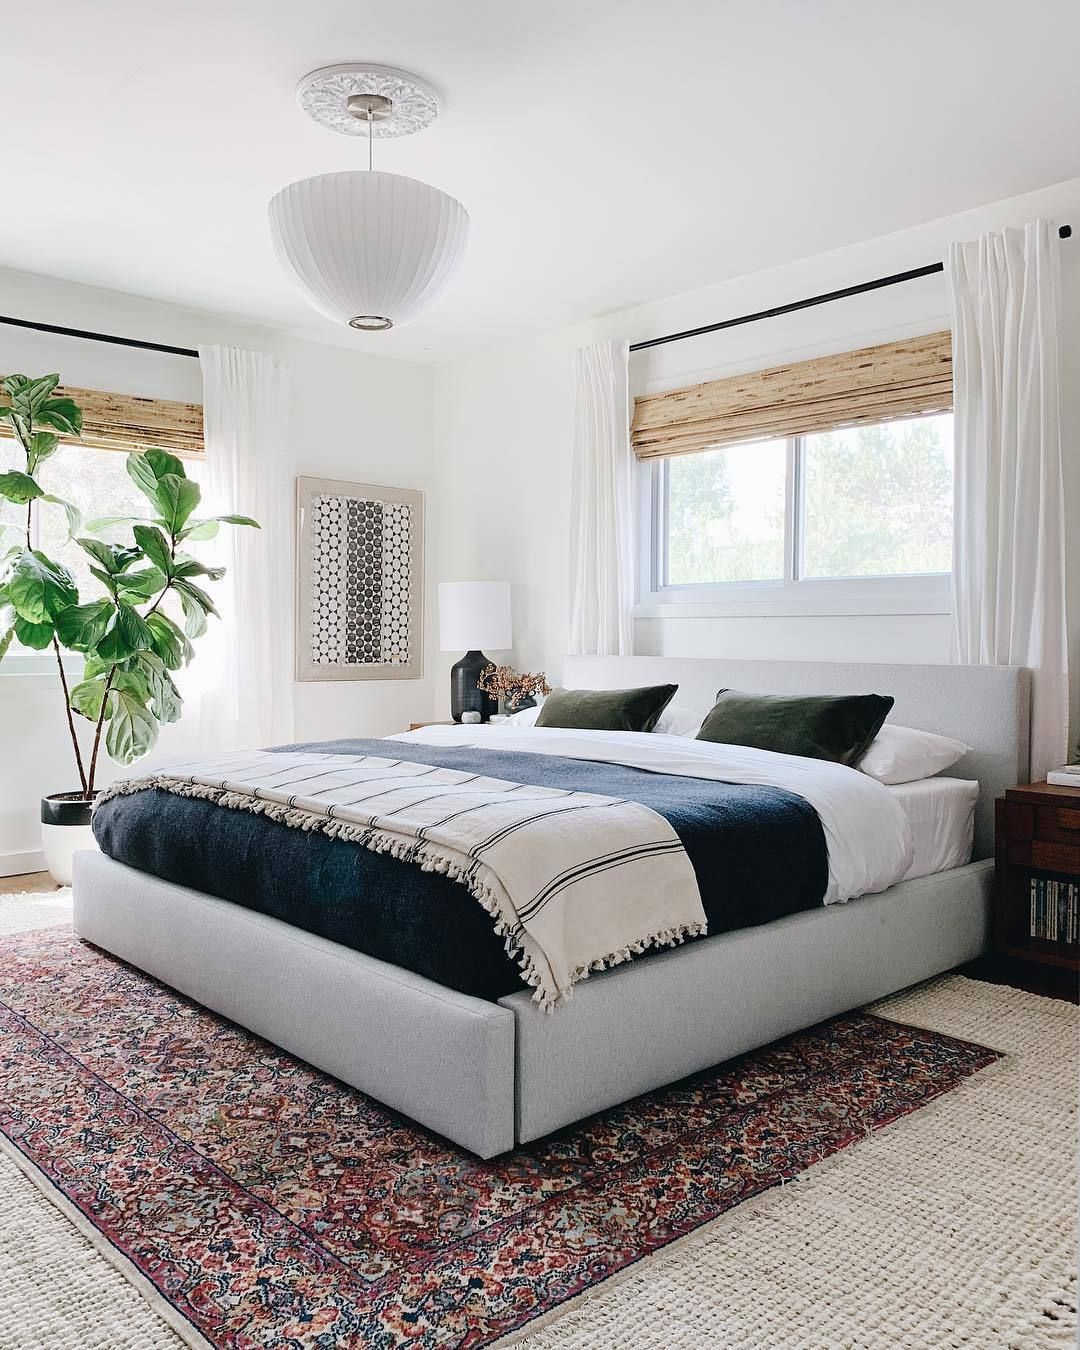 Painting Trim White The Best White Paints For Trim Clare Modern Bedroom Furniture Modern Bedroom Contemporary Bed